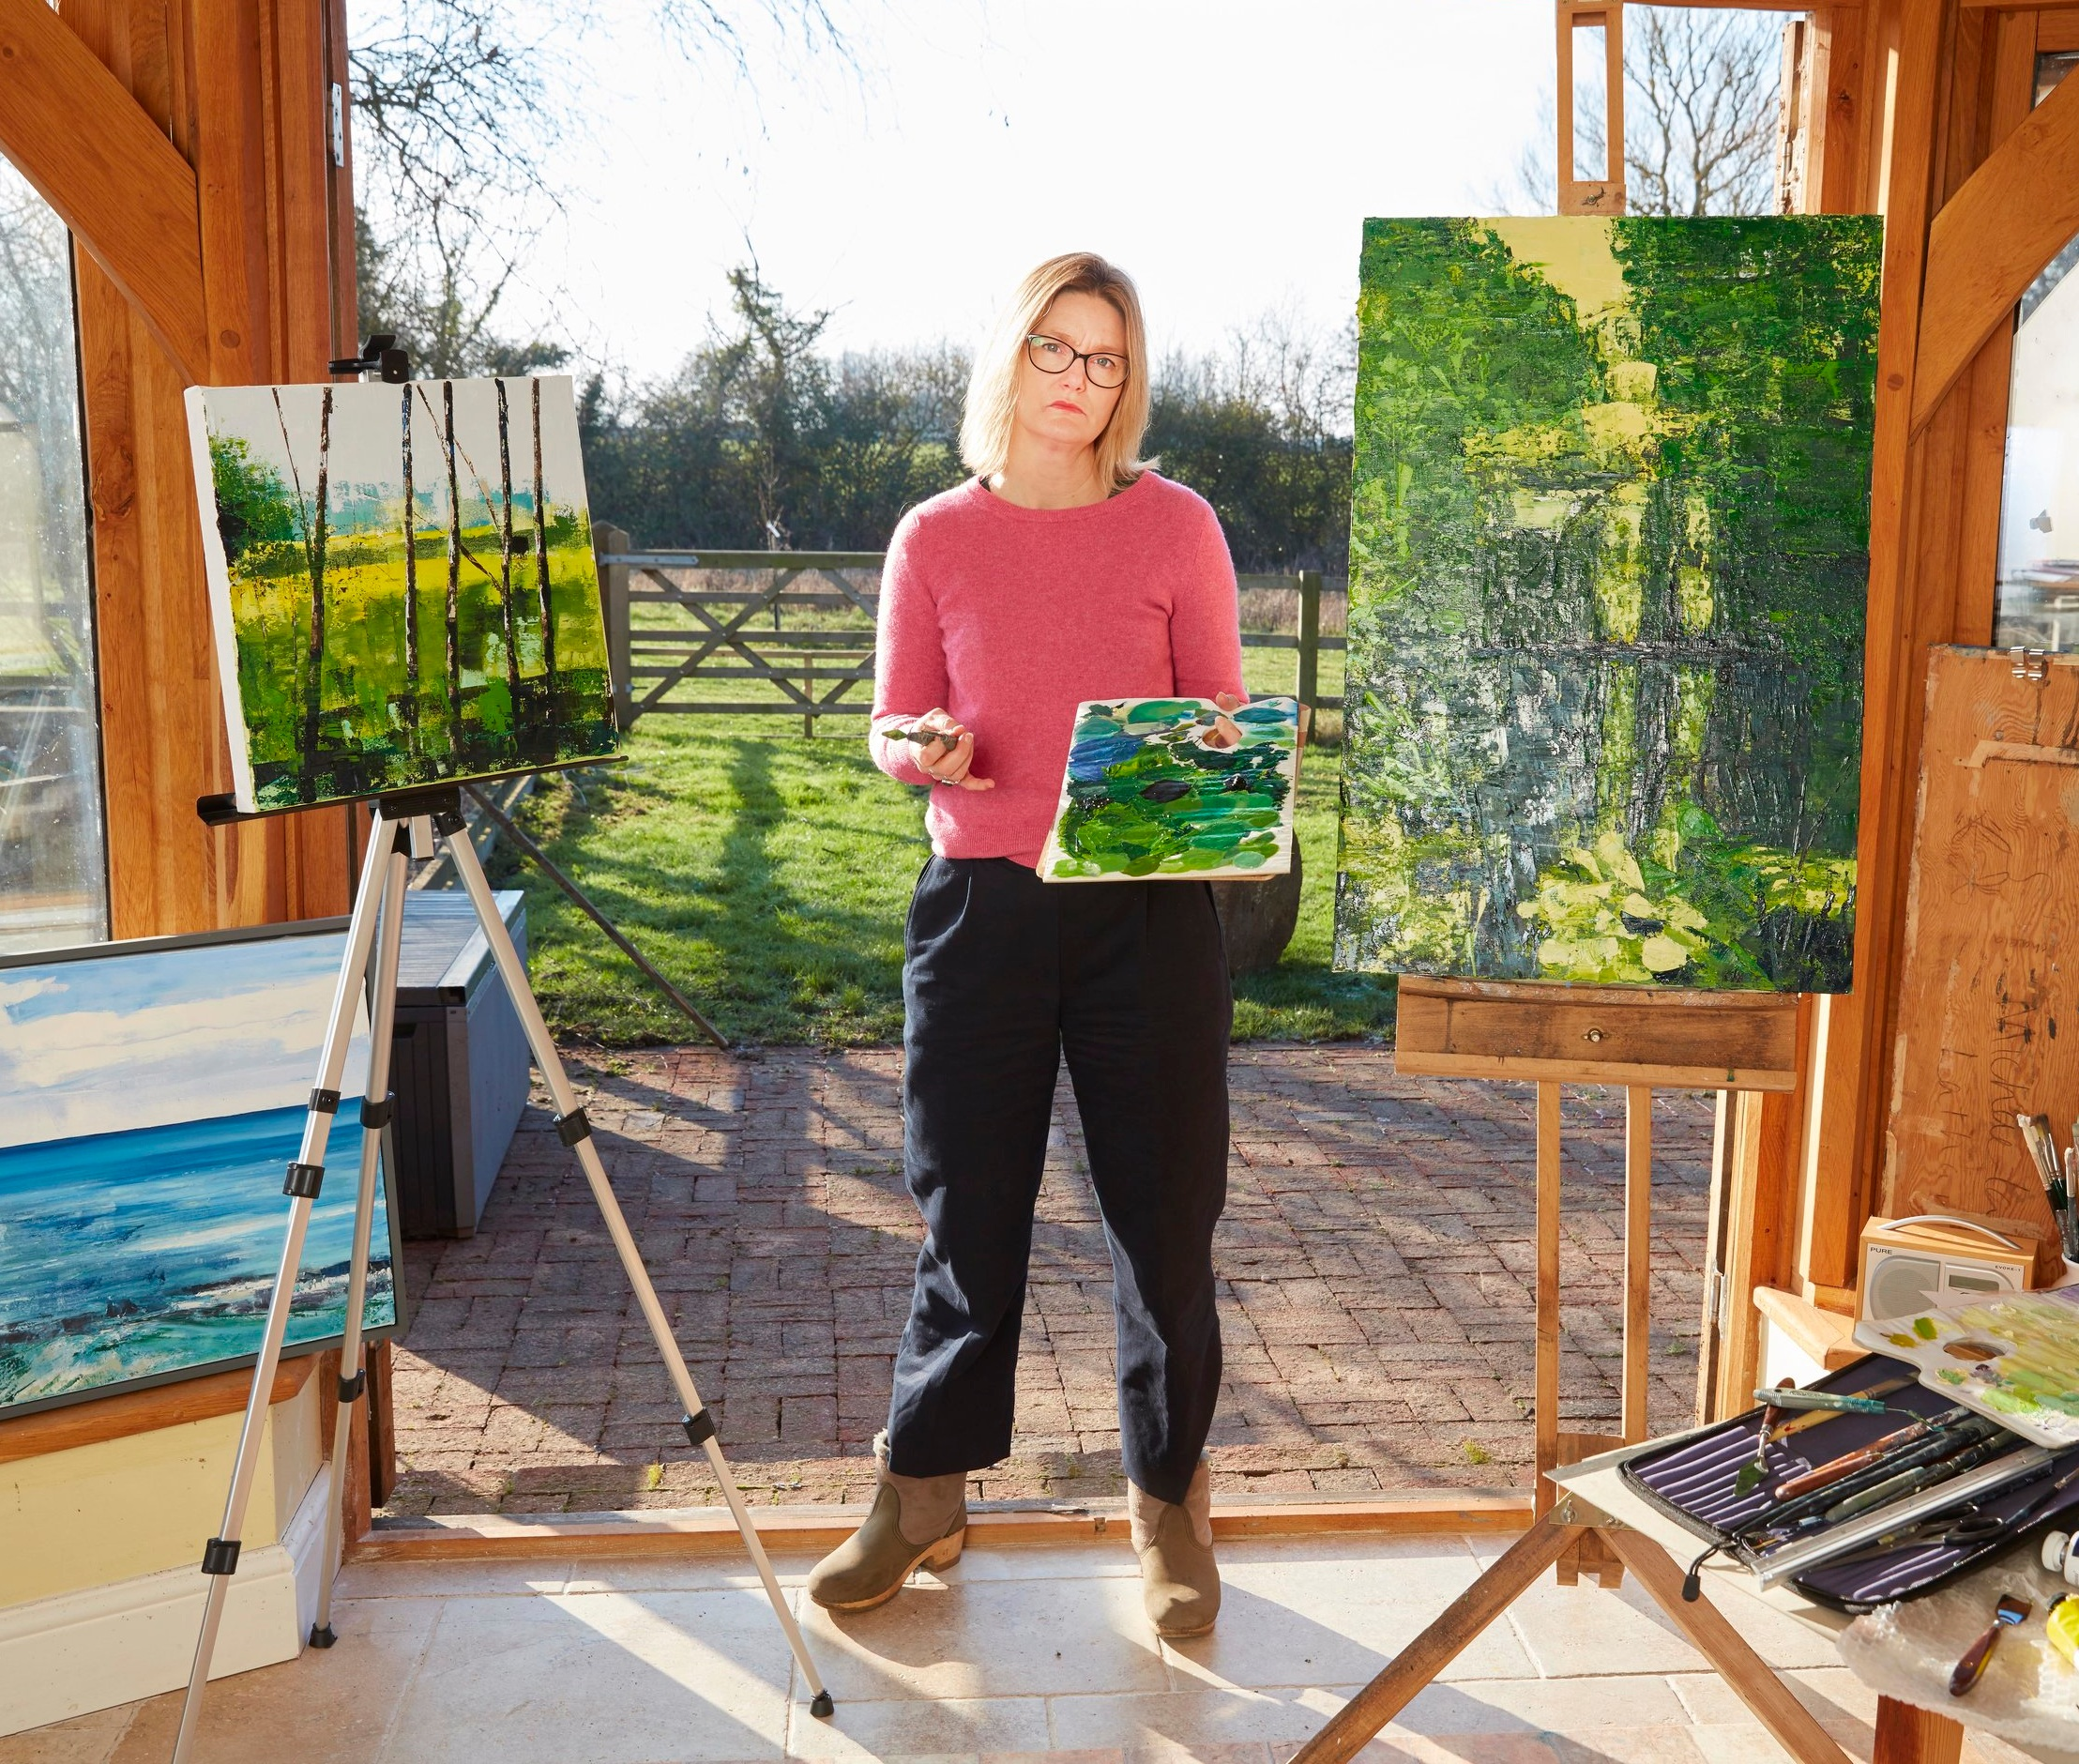 Artist Michaela in her studio. Behind the gate and fence outside is the field where EDF propose locating a construction compound and the start of the major road to Sizewell.